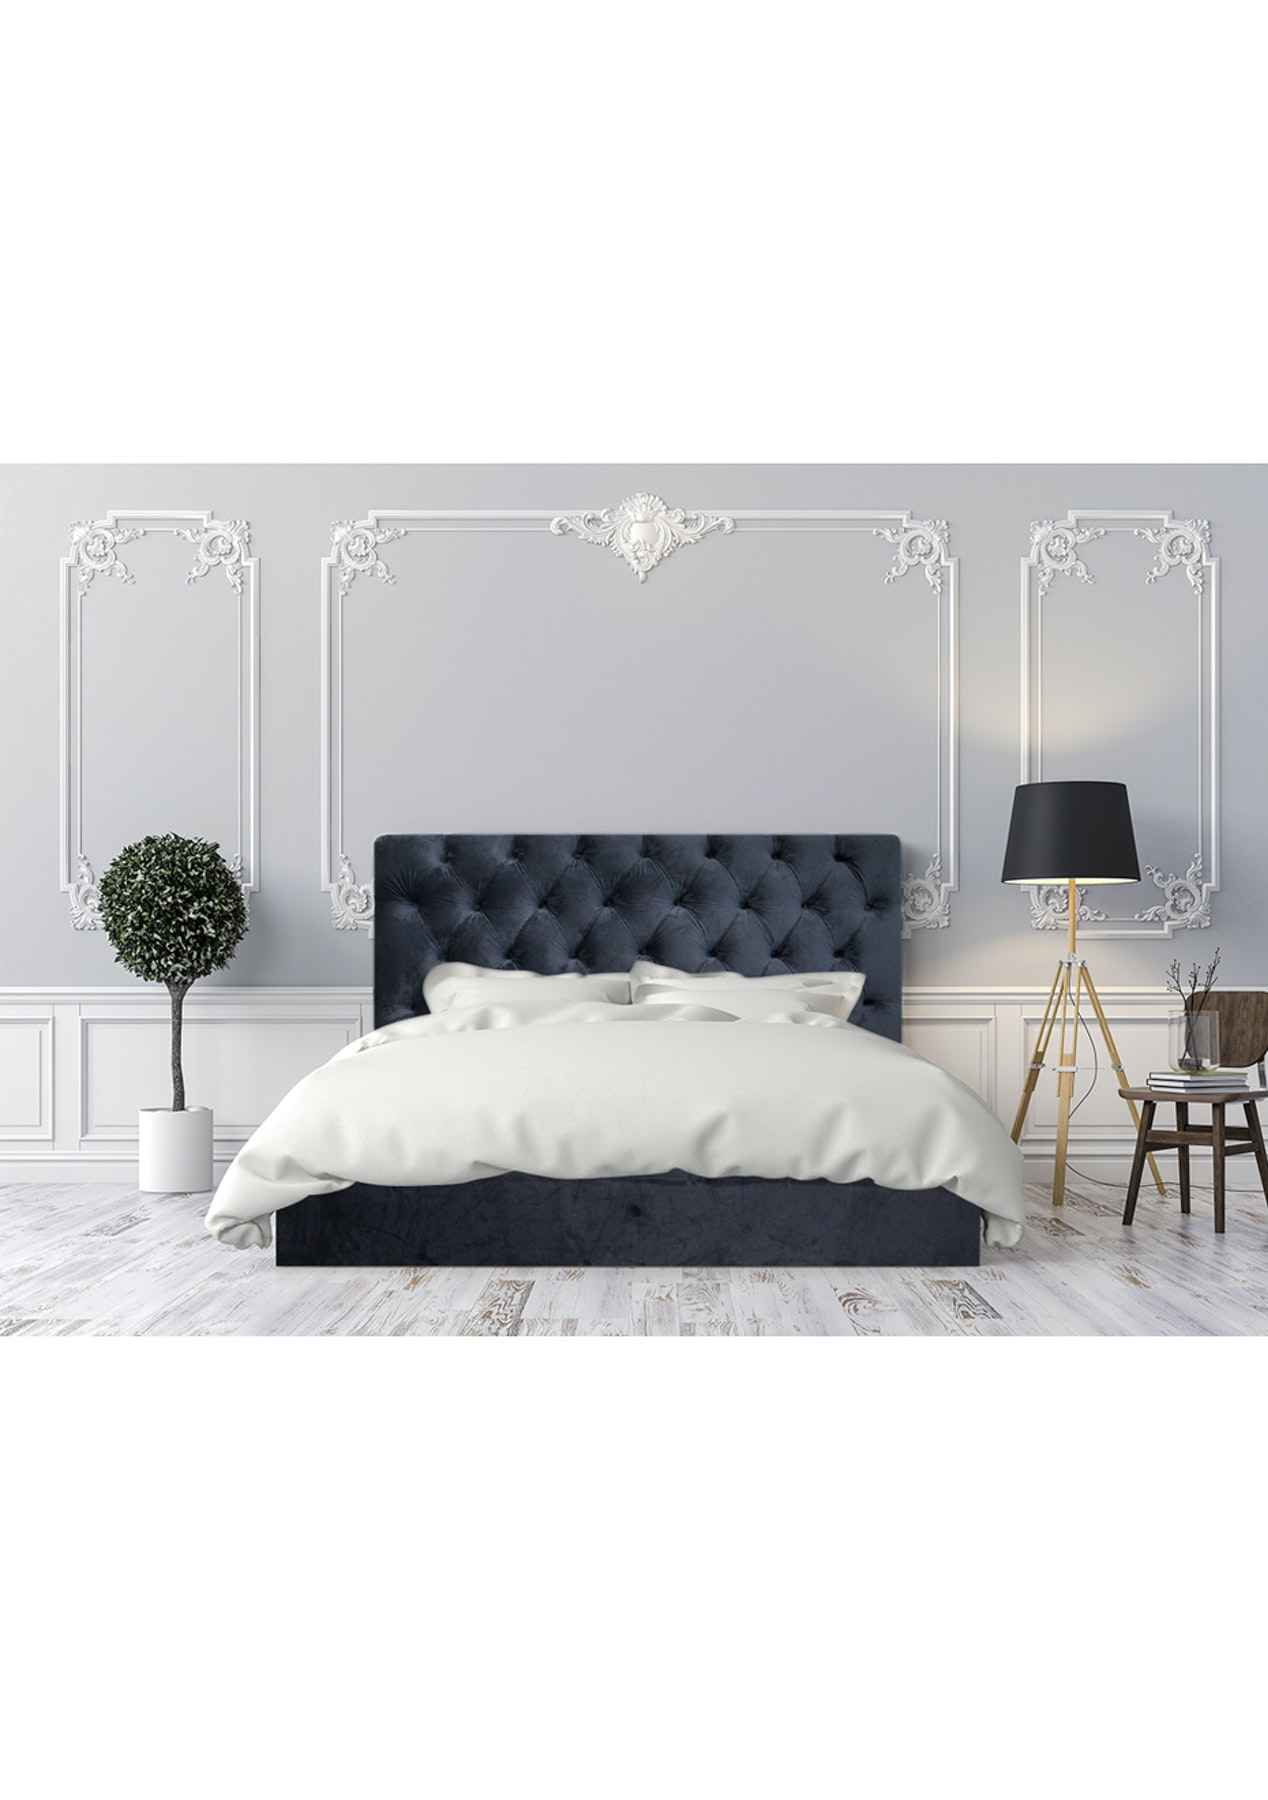 velvet headboard king  navy  premium velvet button headboards  onceit. velvet headboard king  navy  premium velvet button headboards